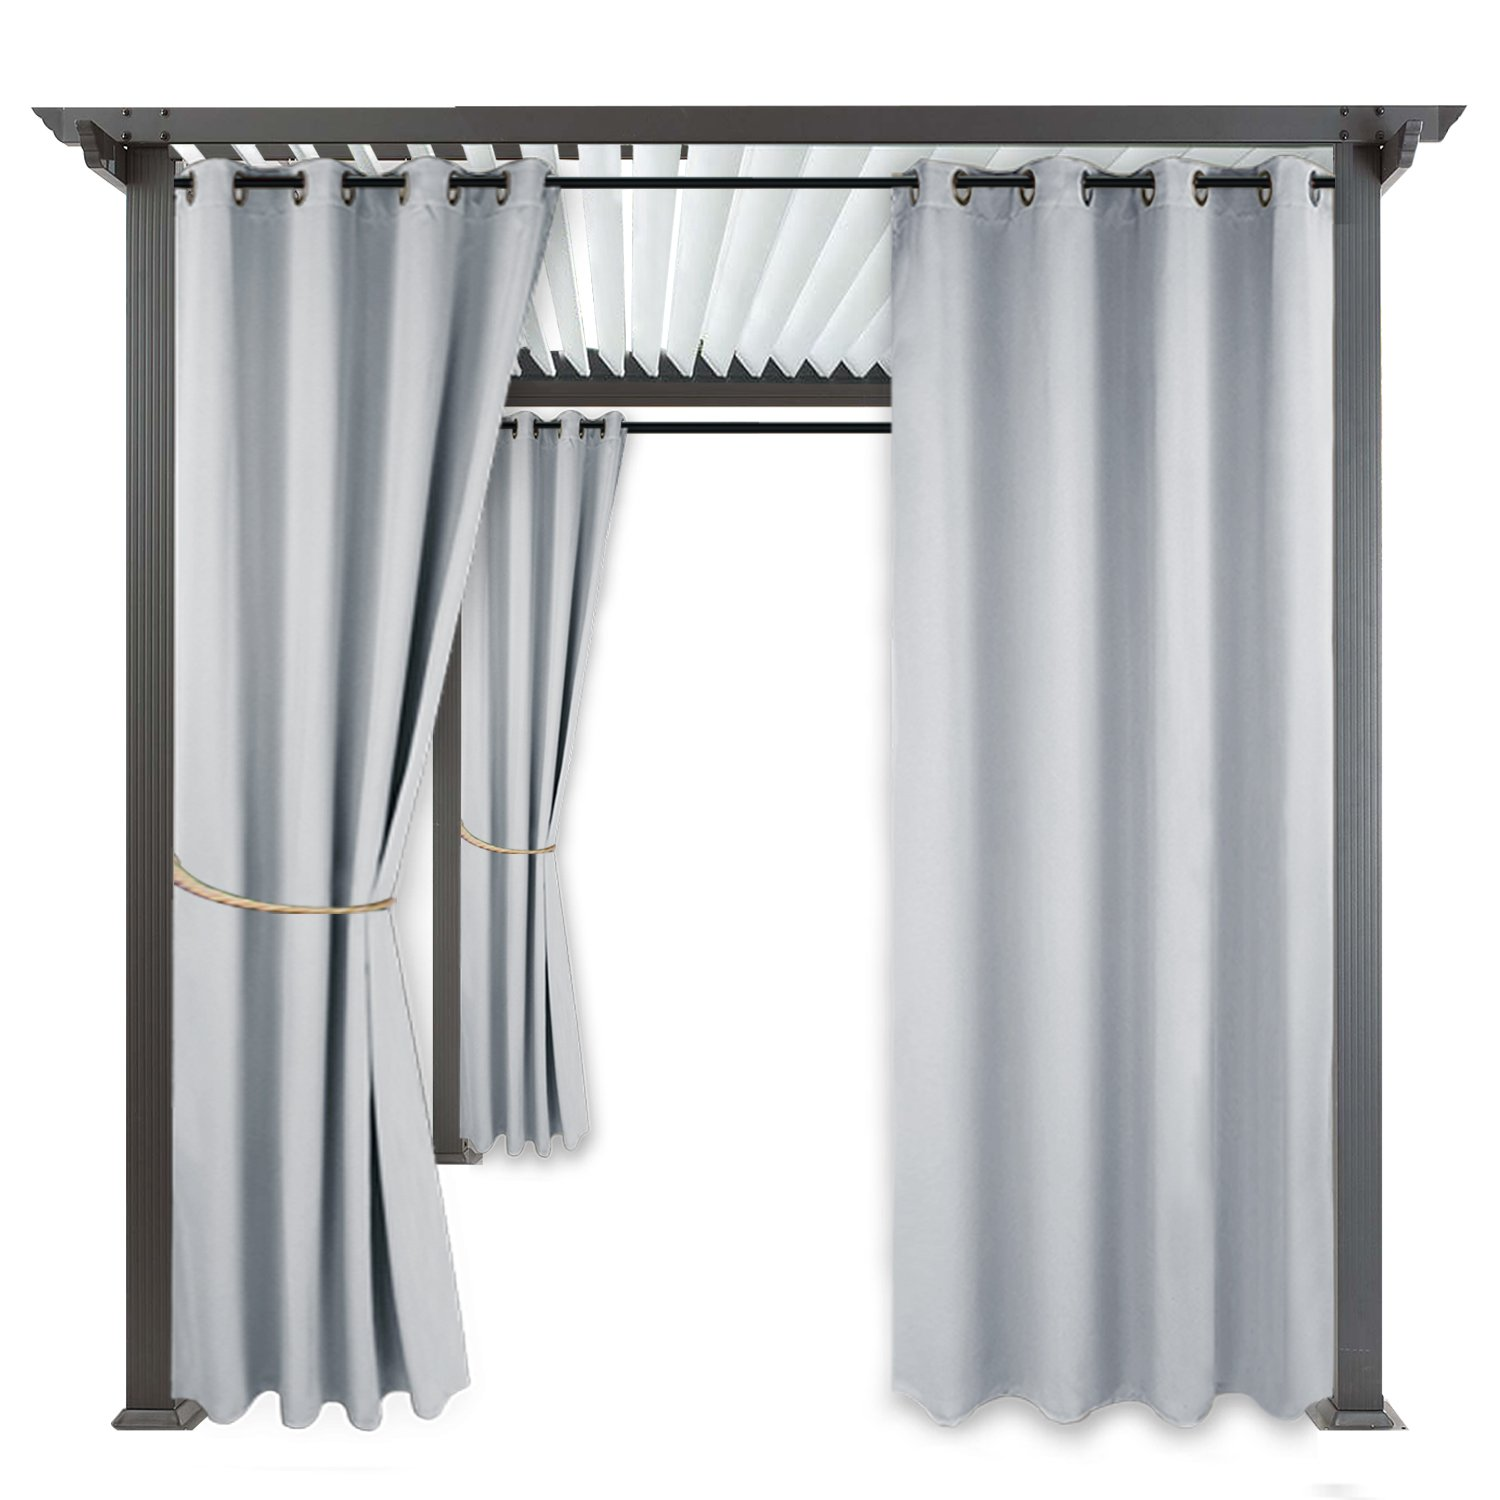 RYB HOME 108'' Pergola Curtain - Blackout Shades Outdoor Décor Top Ring Grommet Rust Proof Water Repellent Privacy Protect for Side Wall/Patio / Cabana, 1 Panel, 52'' x 108'', Greyish White